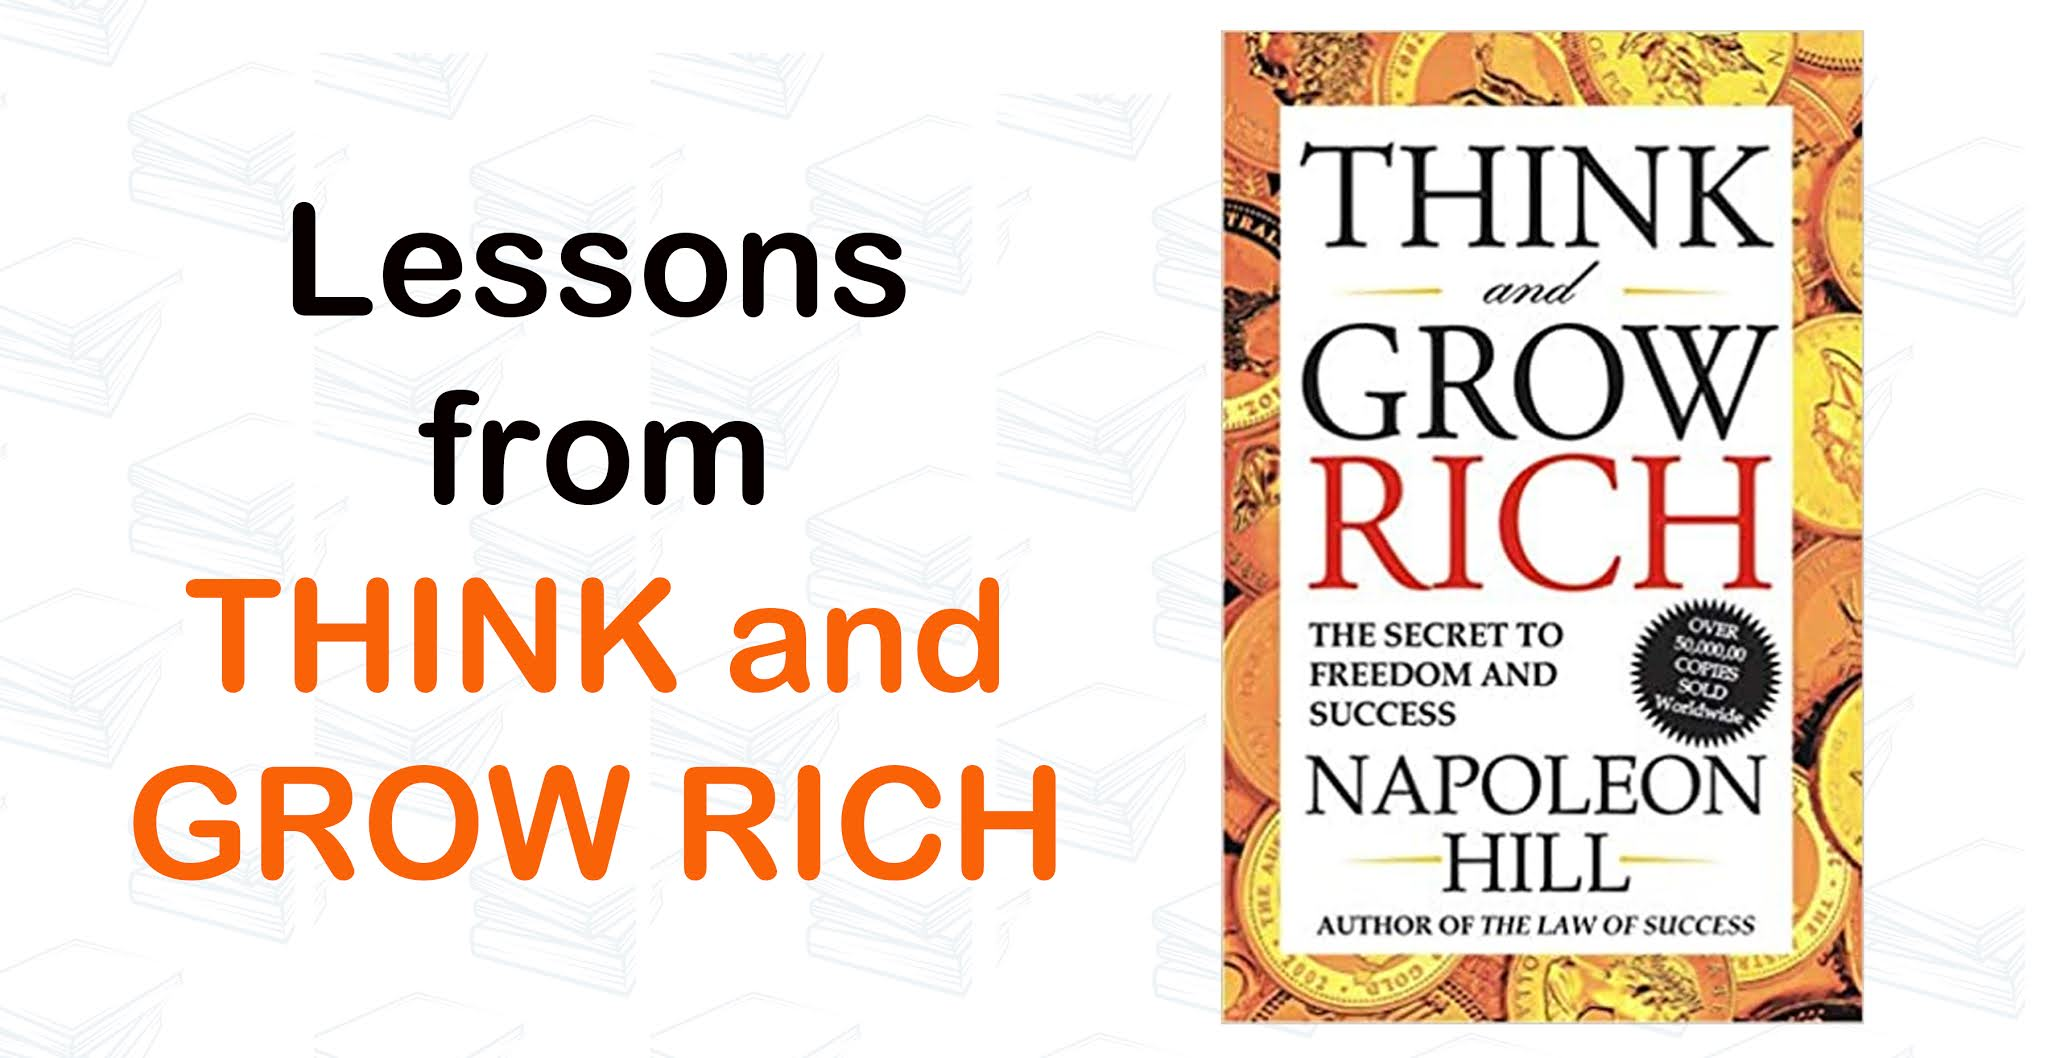 Lessons from Think and Grow Rich: Napoleon Hill